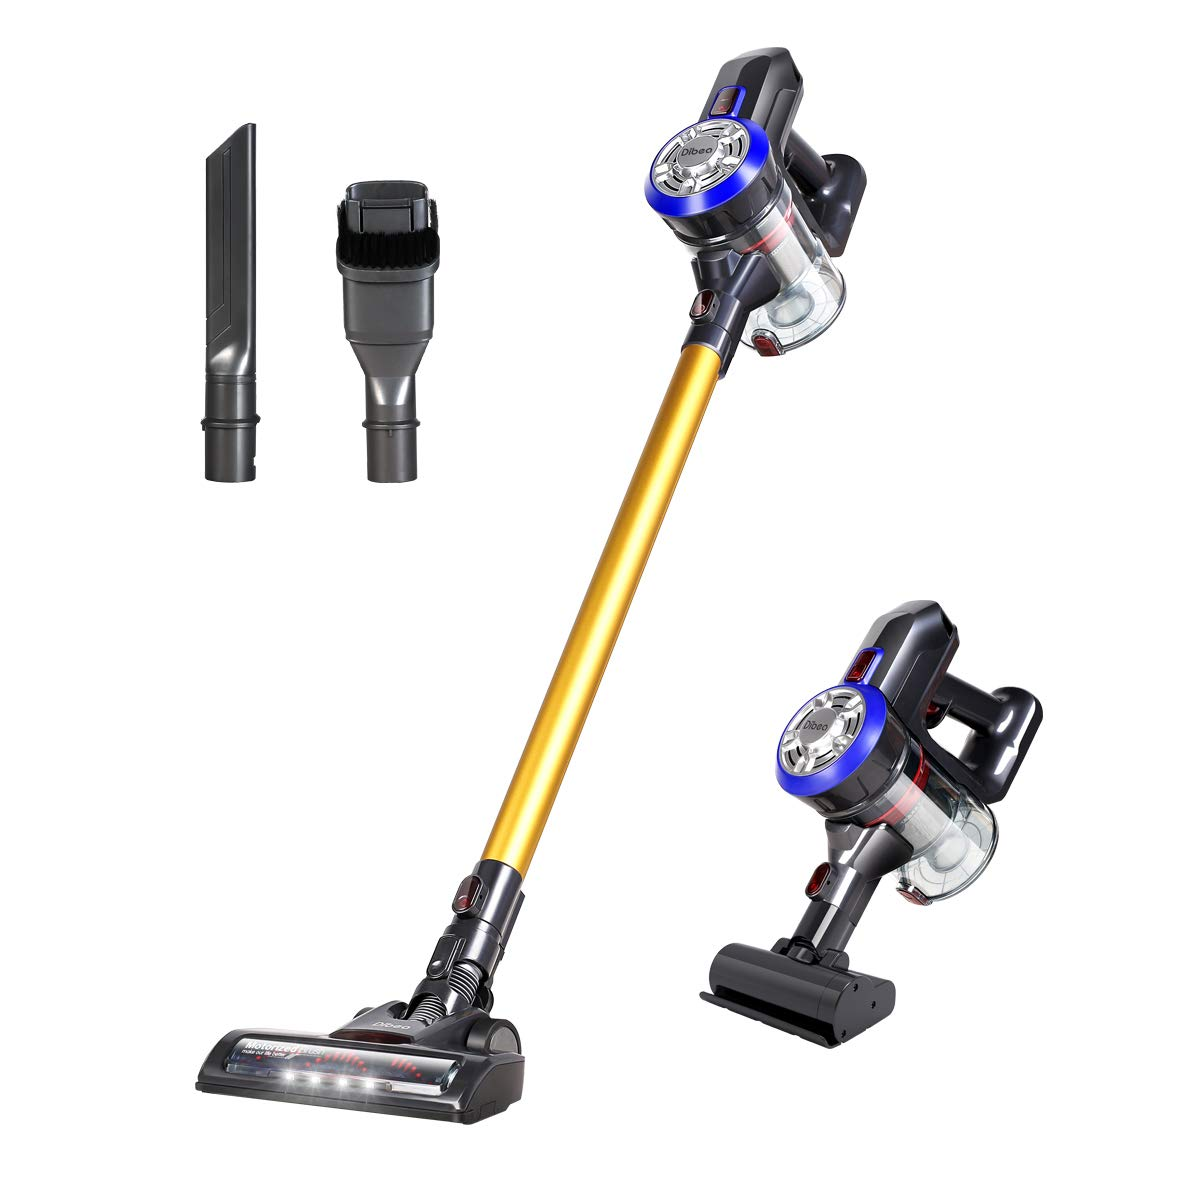 Dibea D18 Lightweight Cordless Stick Vacuum Cleaner, 2 in 1 Bagless Rechargeable Handheld Car Vacuum with Mini Motorized Brush for Floor Carpet Pet Hair, Gold by Dibea